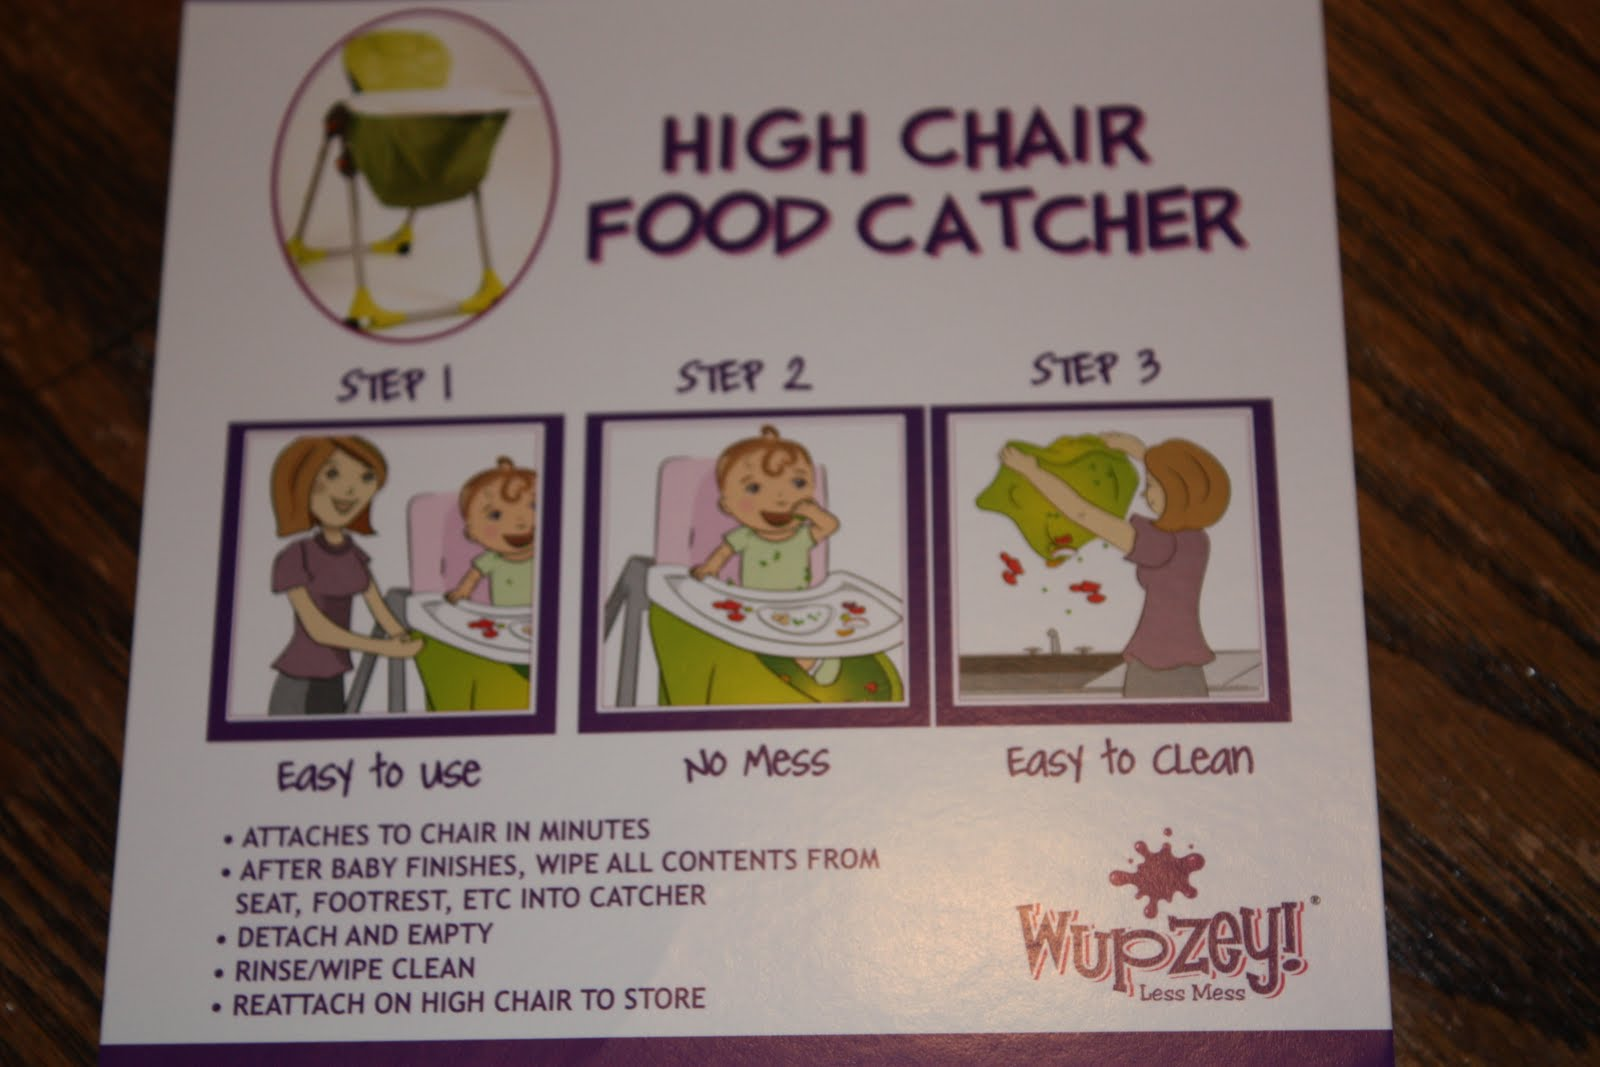 High Chair Food Catcher Reclining Lounge Chairs Momma Drama Wupzey Review And Giveaway